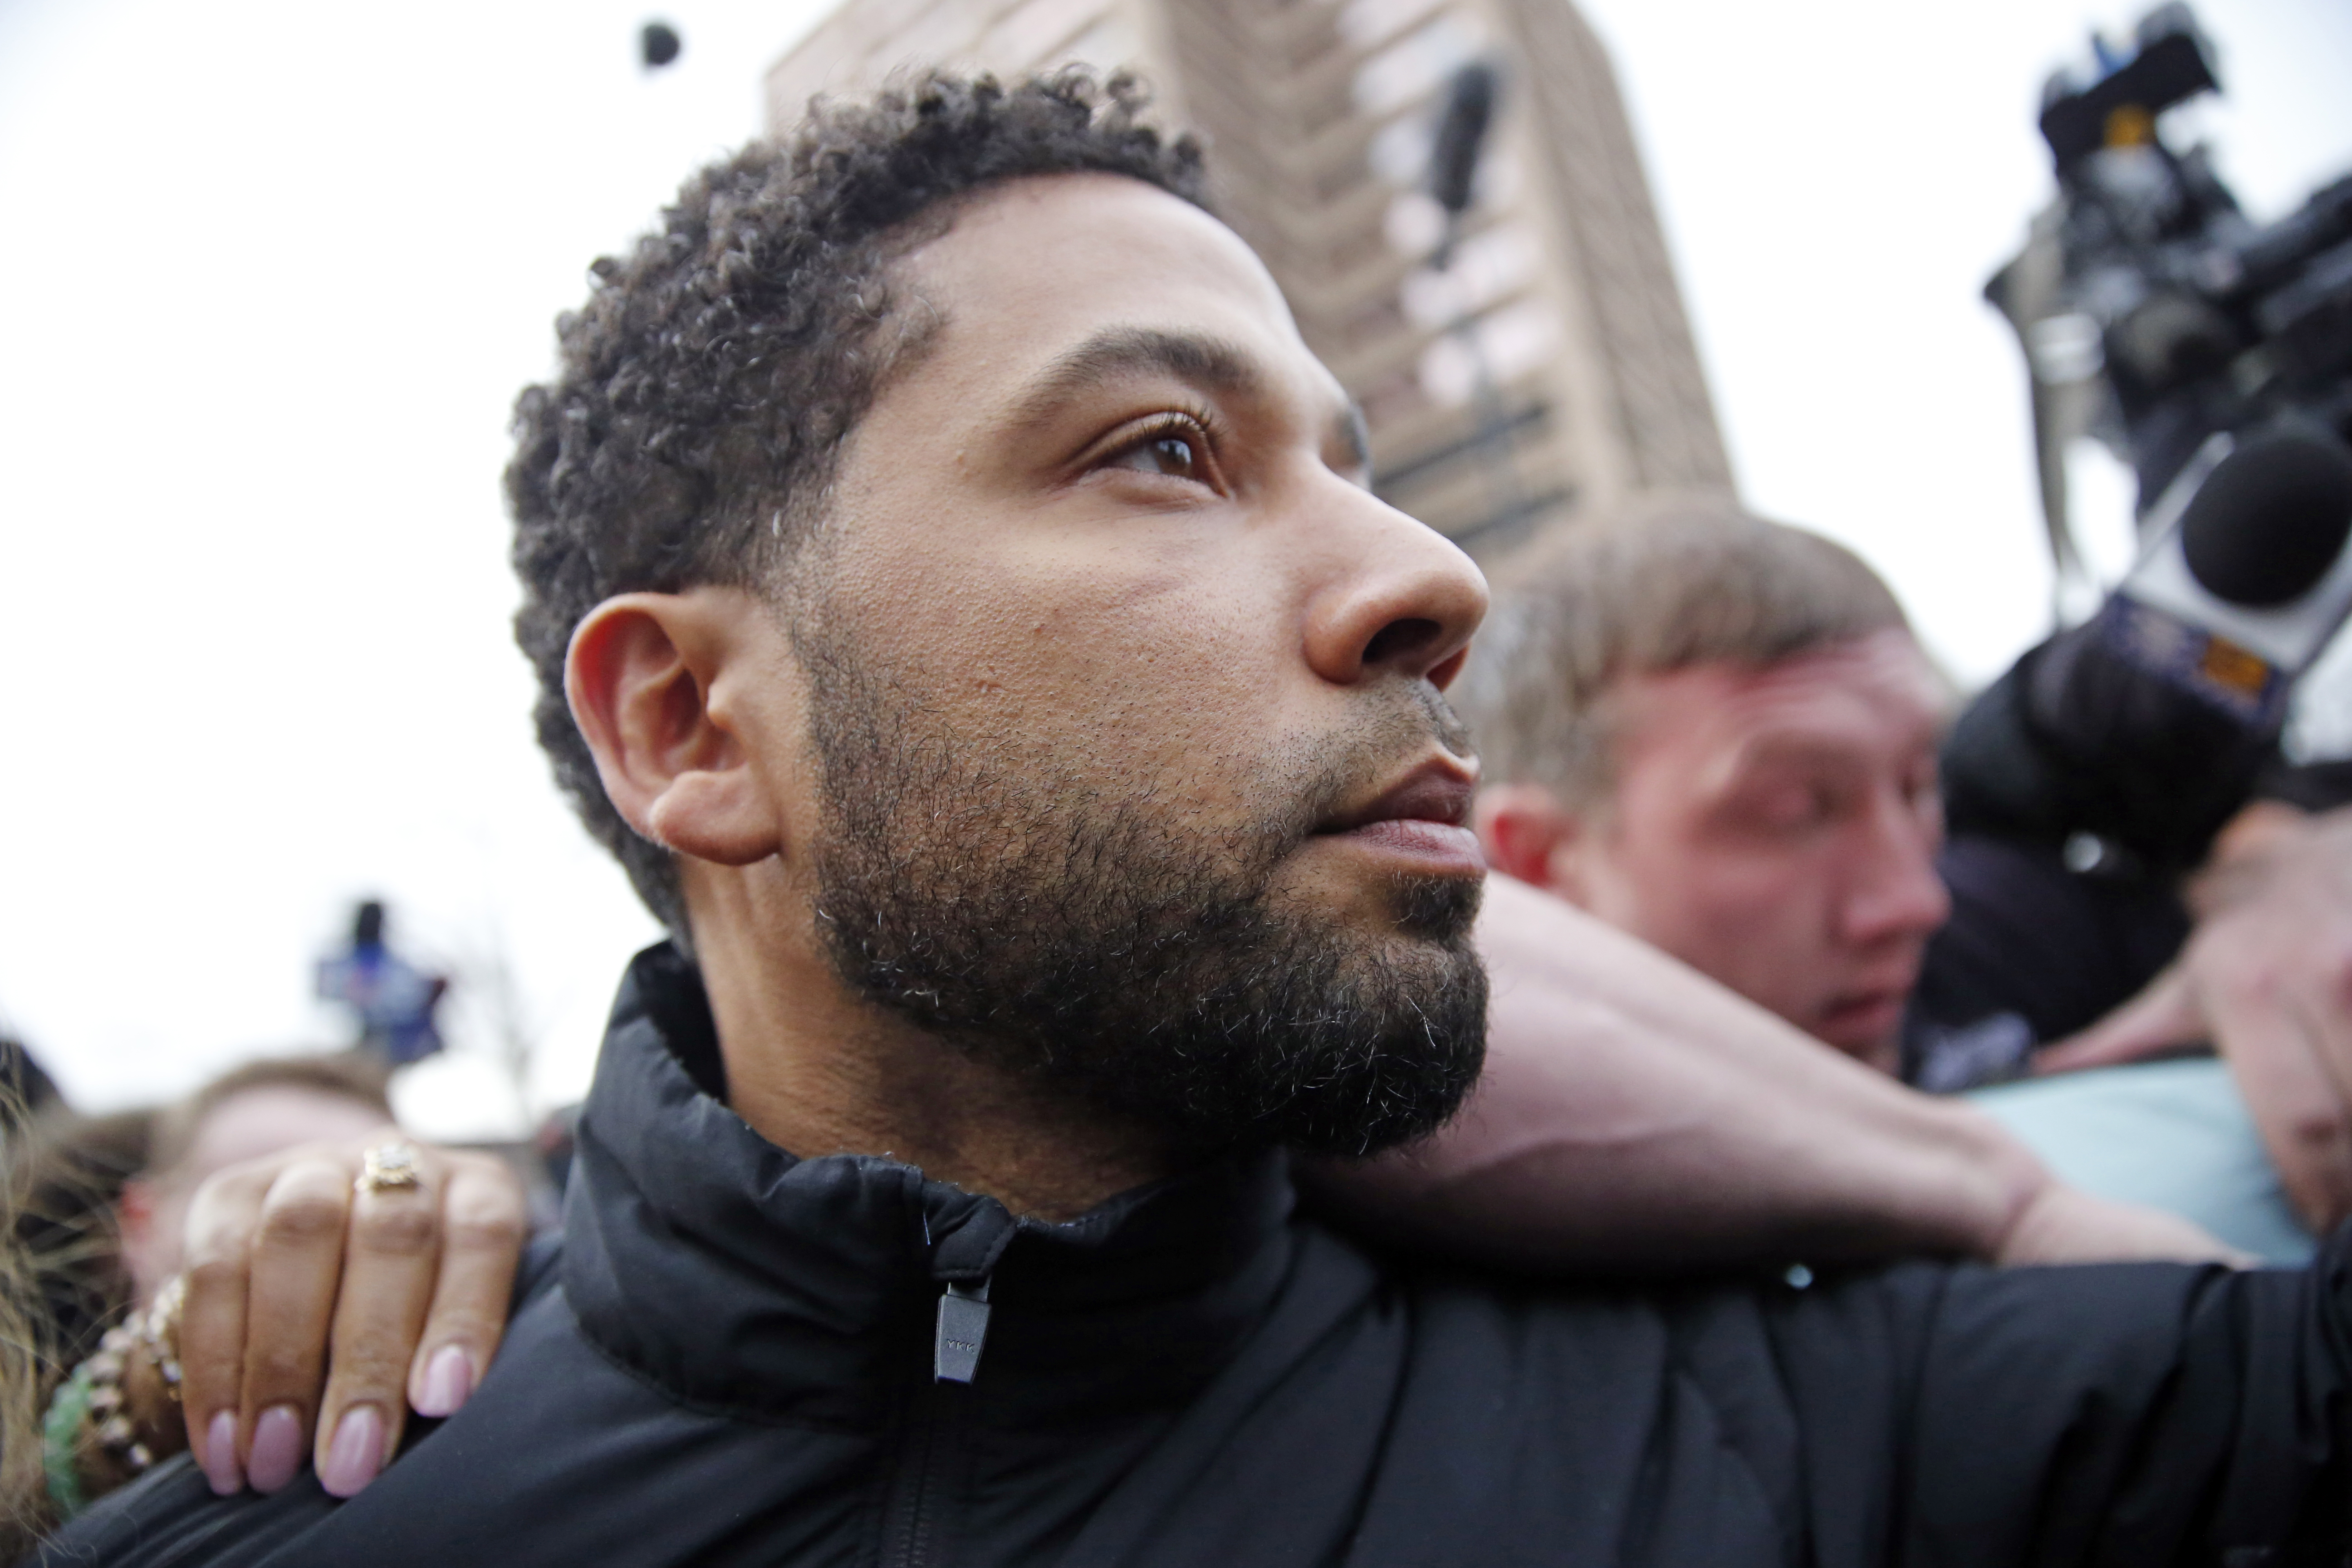 Empire actor Jussie Smollett leaves Cook County jail after posting bond on February 21, 2019, in Chicago, Illinois.